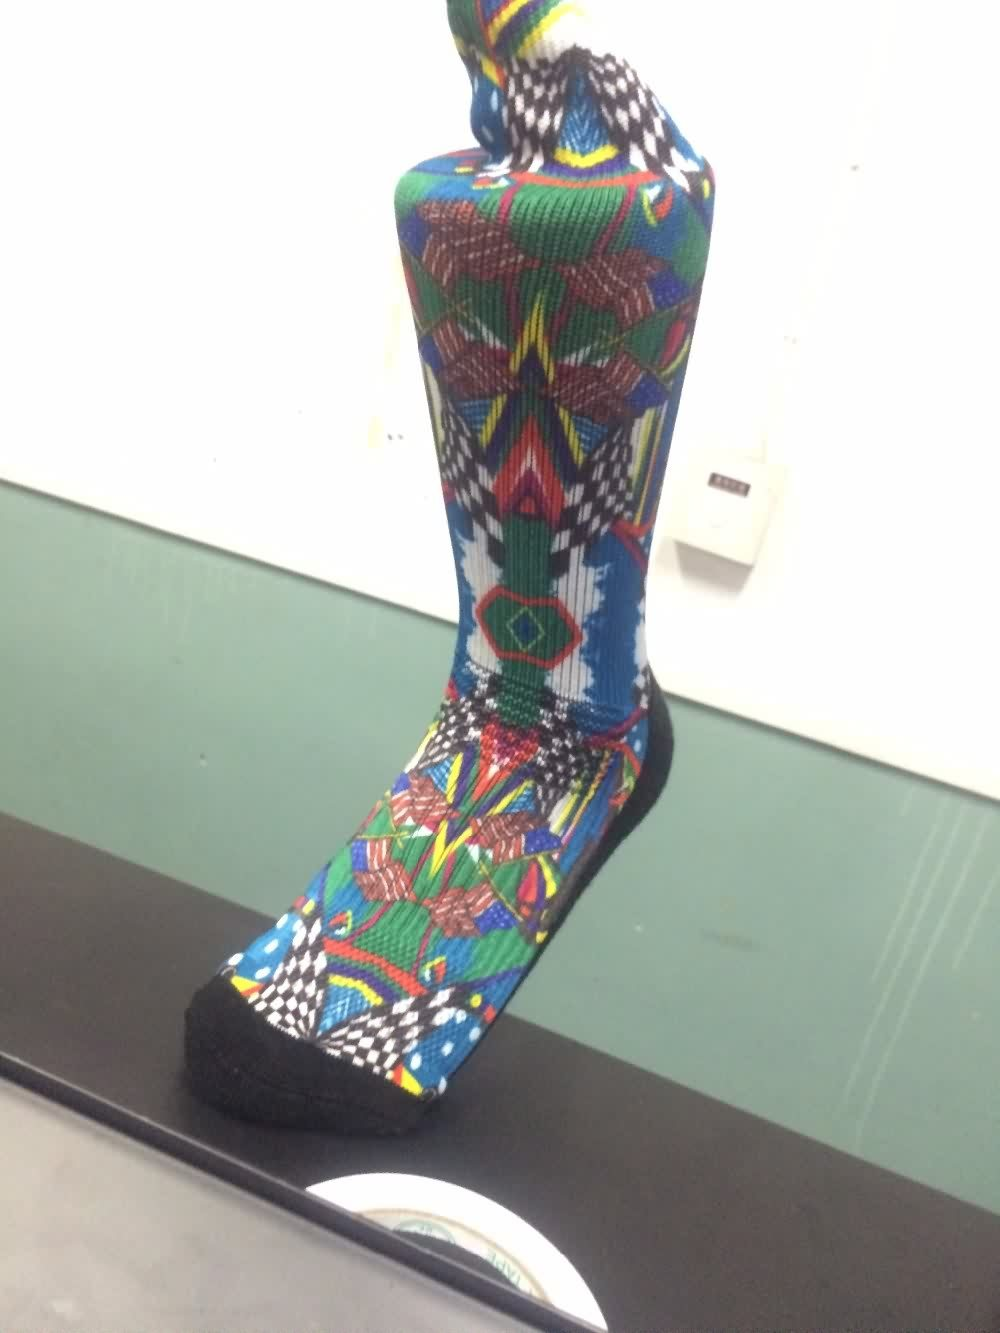 27 Years Factory High quality socks printer,Machine textile for sale to Montreal Importers